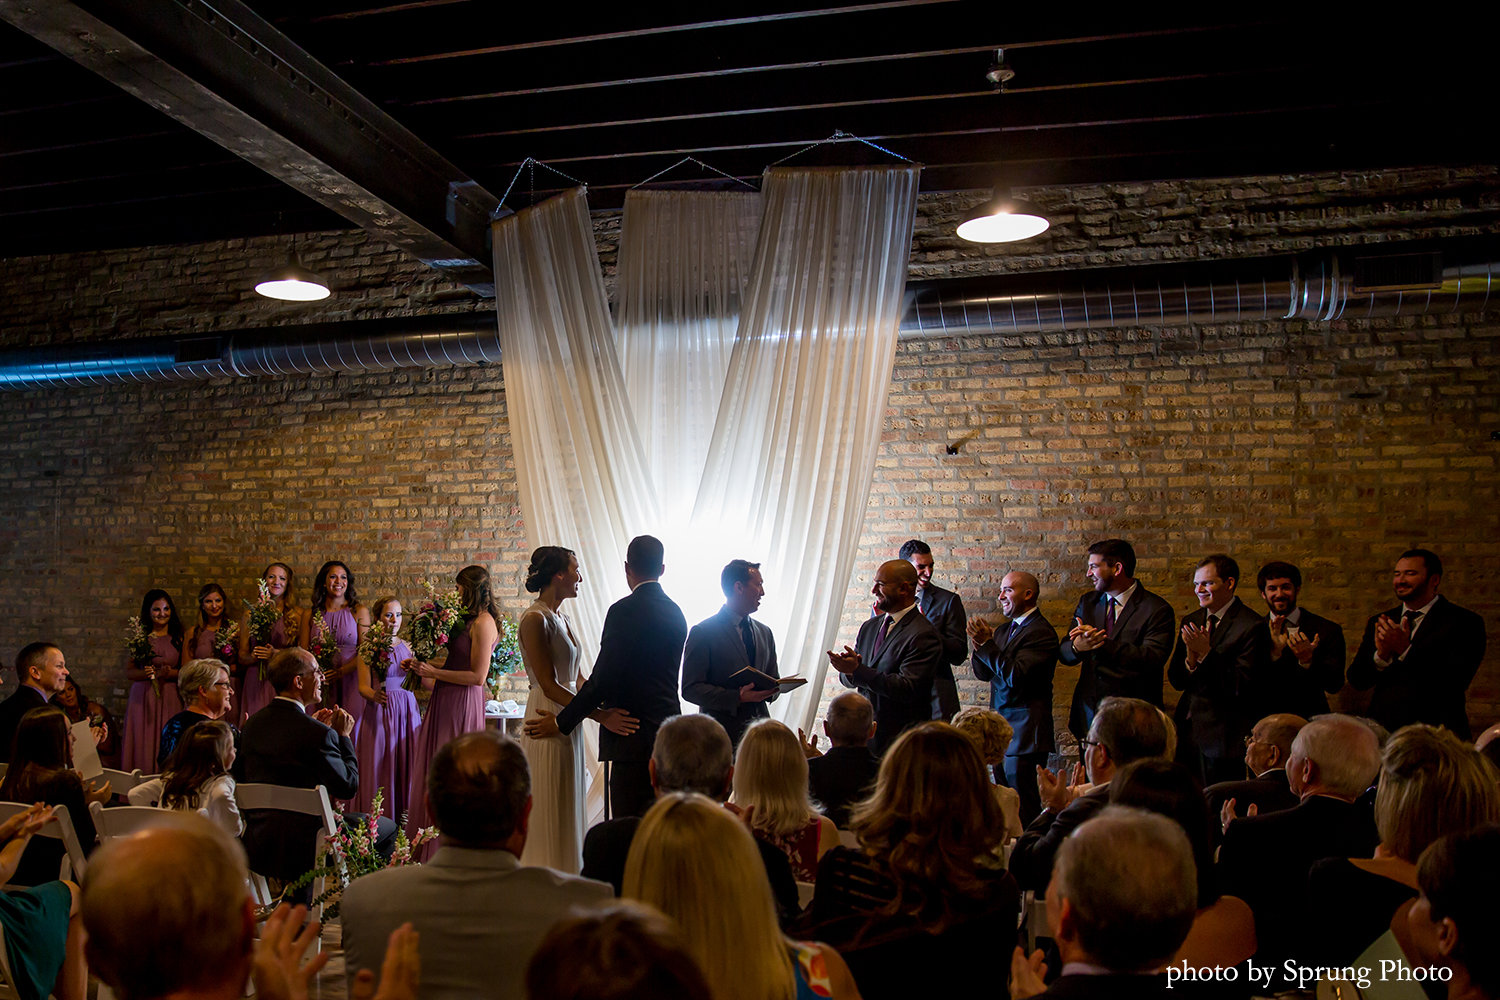 Audrey-and-Aaron-Trigger-Chicago-Wedding-Sprung-Photo-449-web.jpg